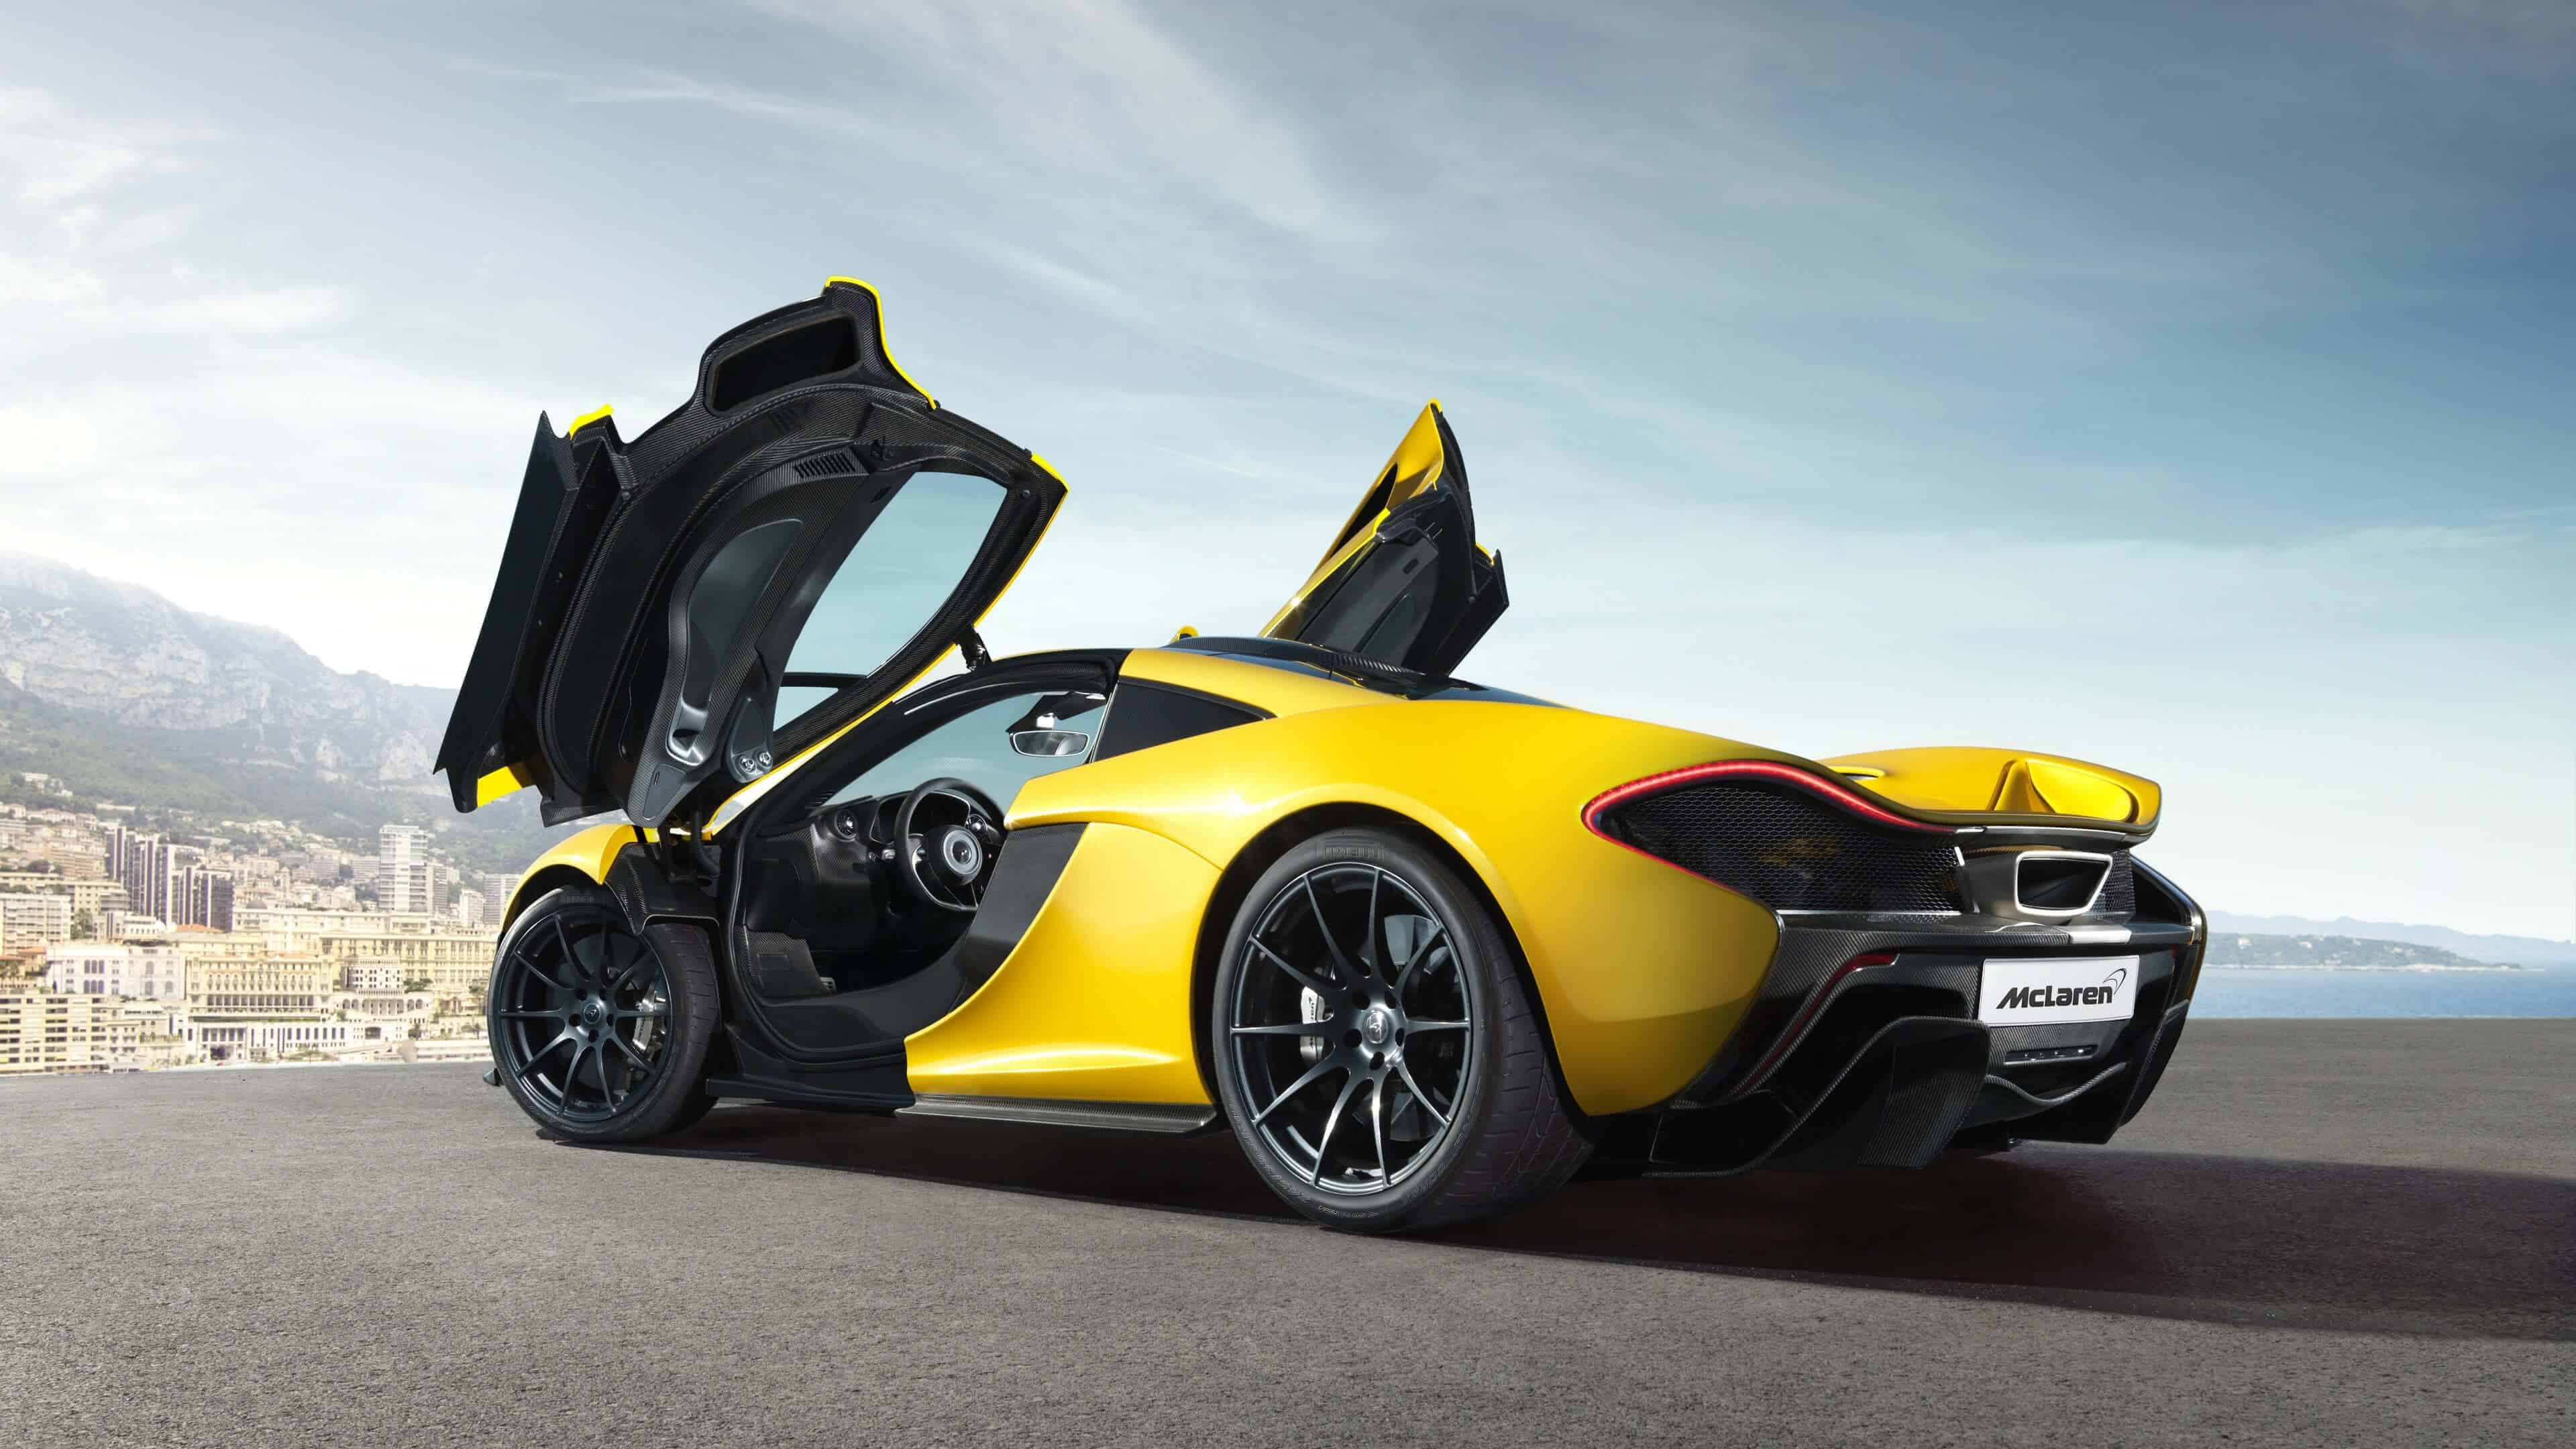 mclaren p1 yellow uhd 4k wallpaper